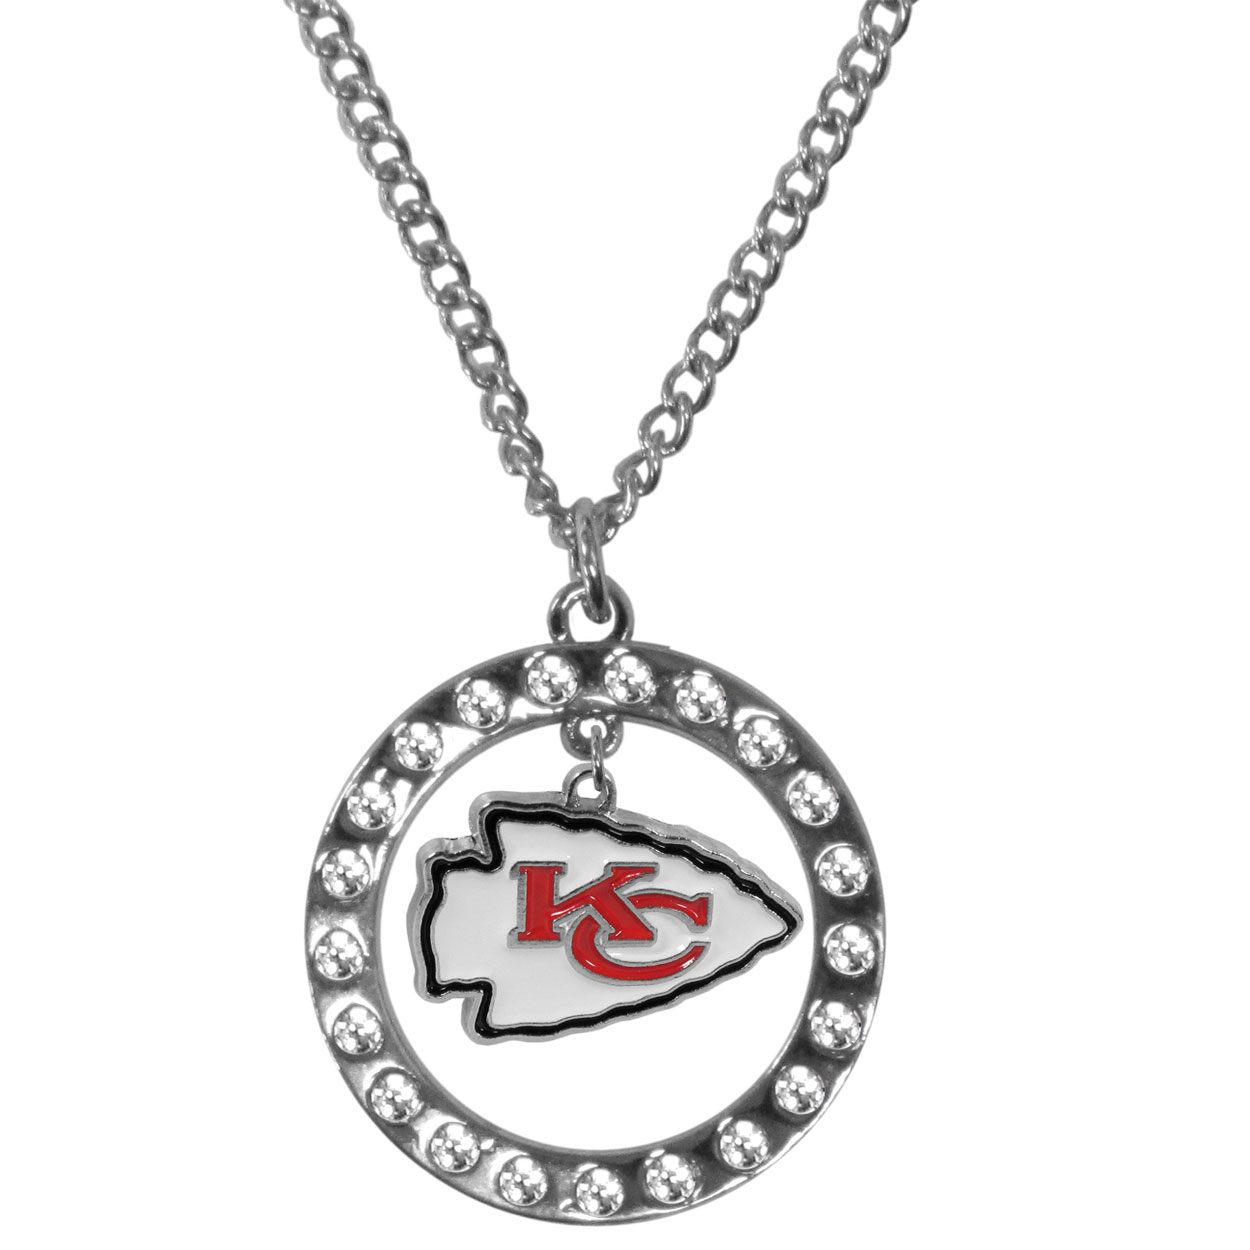 Kansas City Chiefs Rhinestone Hoop Necklaces - Our Kansas City Chiefs rhinestone hoop necklace comes on an 18 inch chain and features a hoop covered in rhinestones with a high polish chrome finish and a cast and enameled team charm dangling in the center.